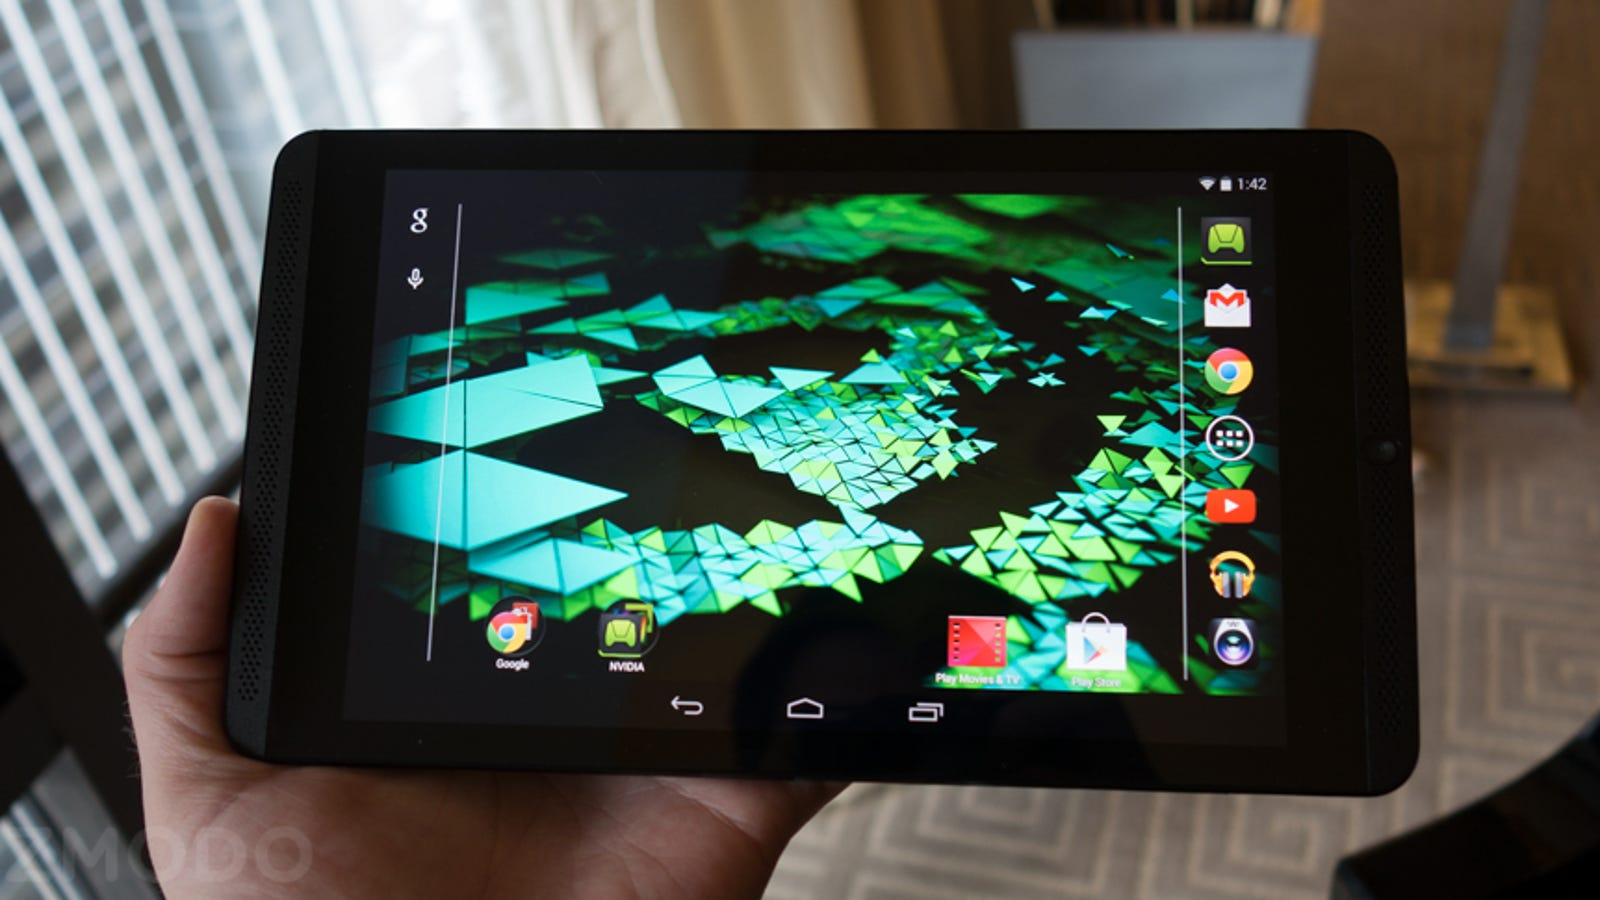 Nvidia Shield Tablet: An Android Tablet With a Game Console